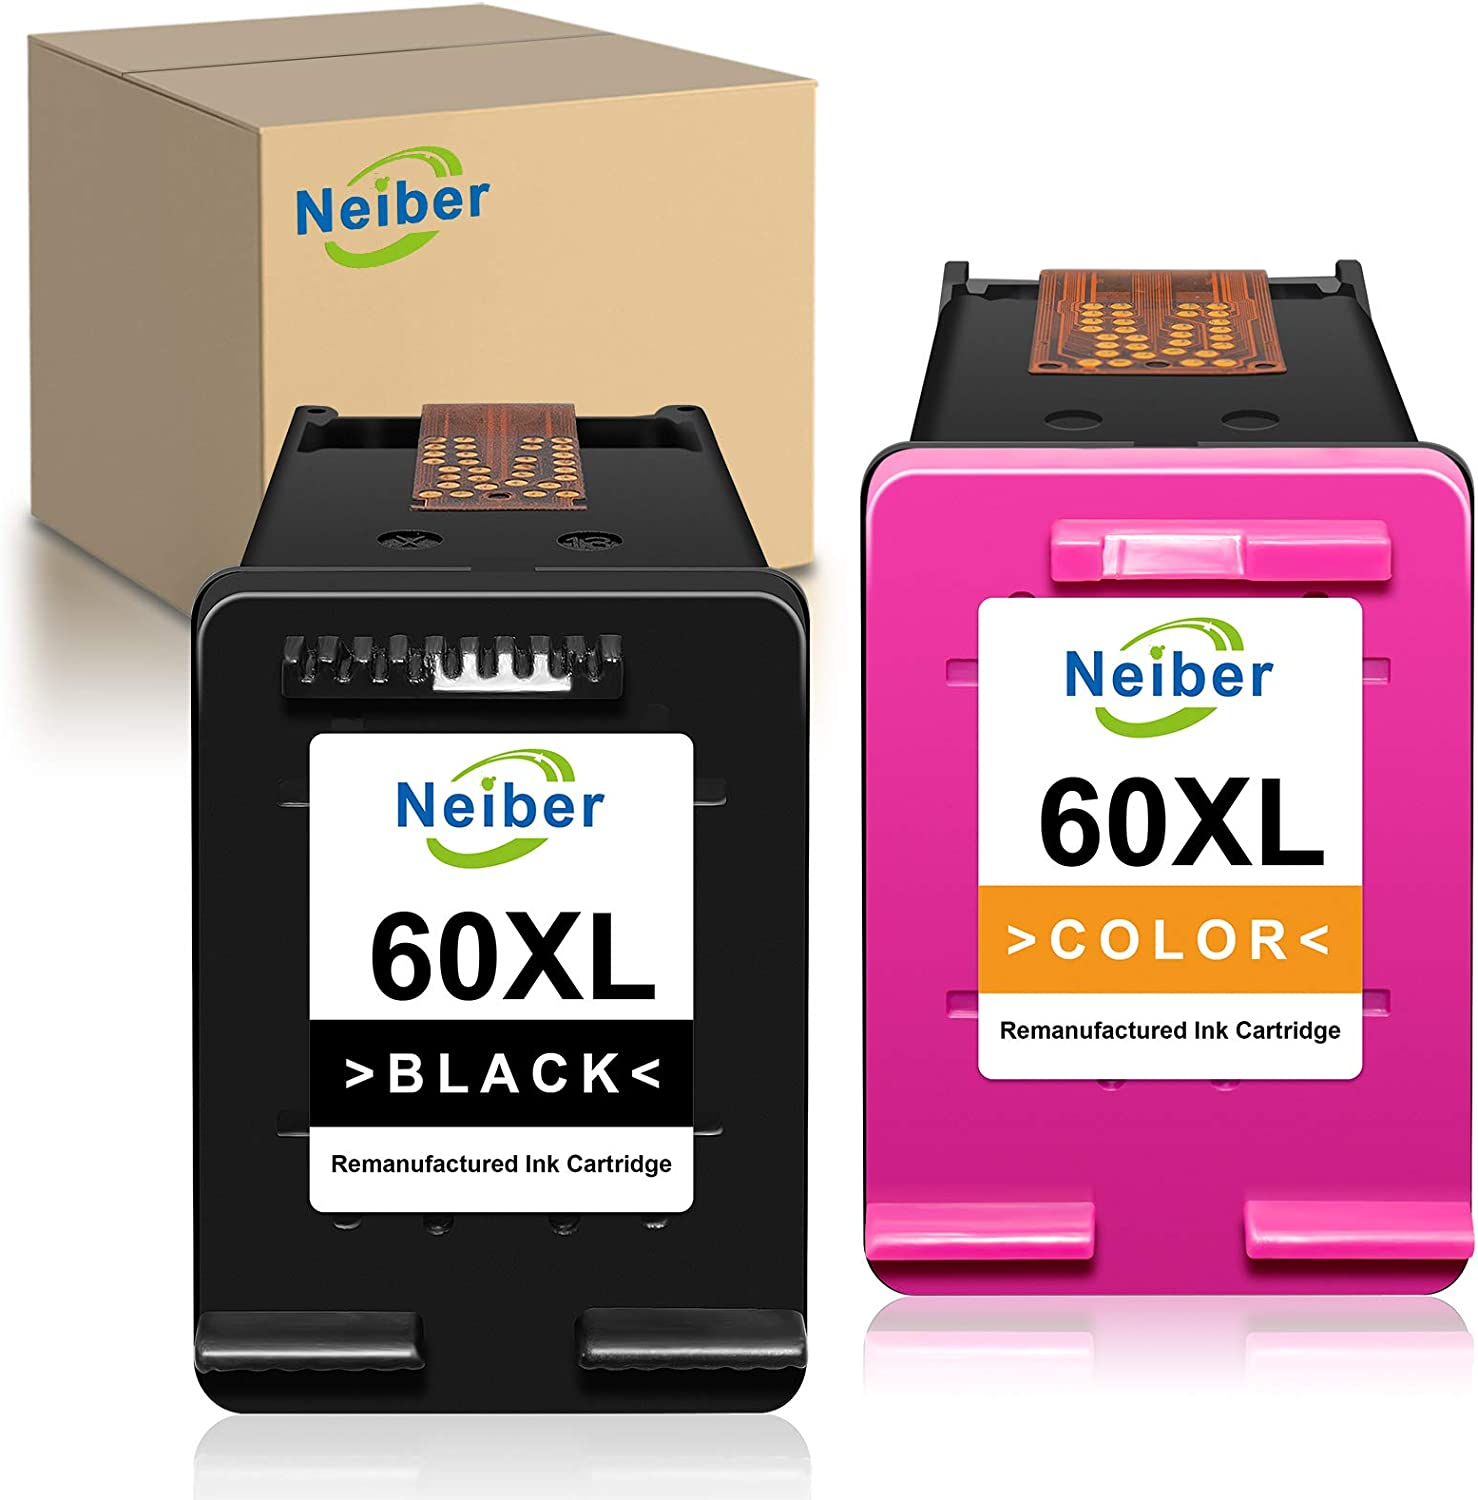 Neiber Remanufactured Ink Cartridge Replacement for HP 60 XL 60XL (1 Black, 1 Tri-Color) Work with PhotoSmart C4700 C4795 C4600 D110a C4680 Envy 120 100 114 110 DeskJet F4235 F4580 F4400 F2430 Printer